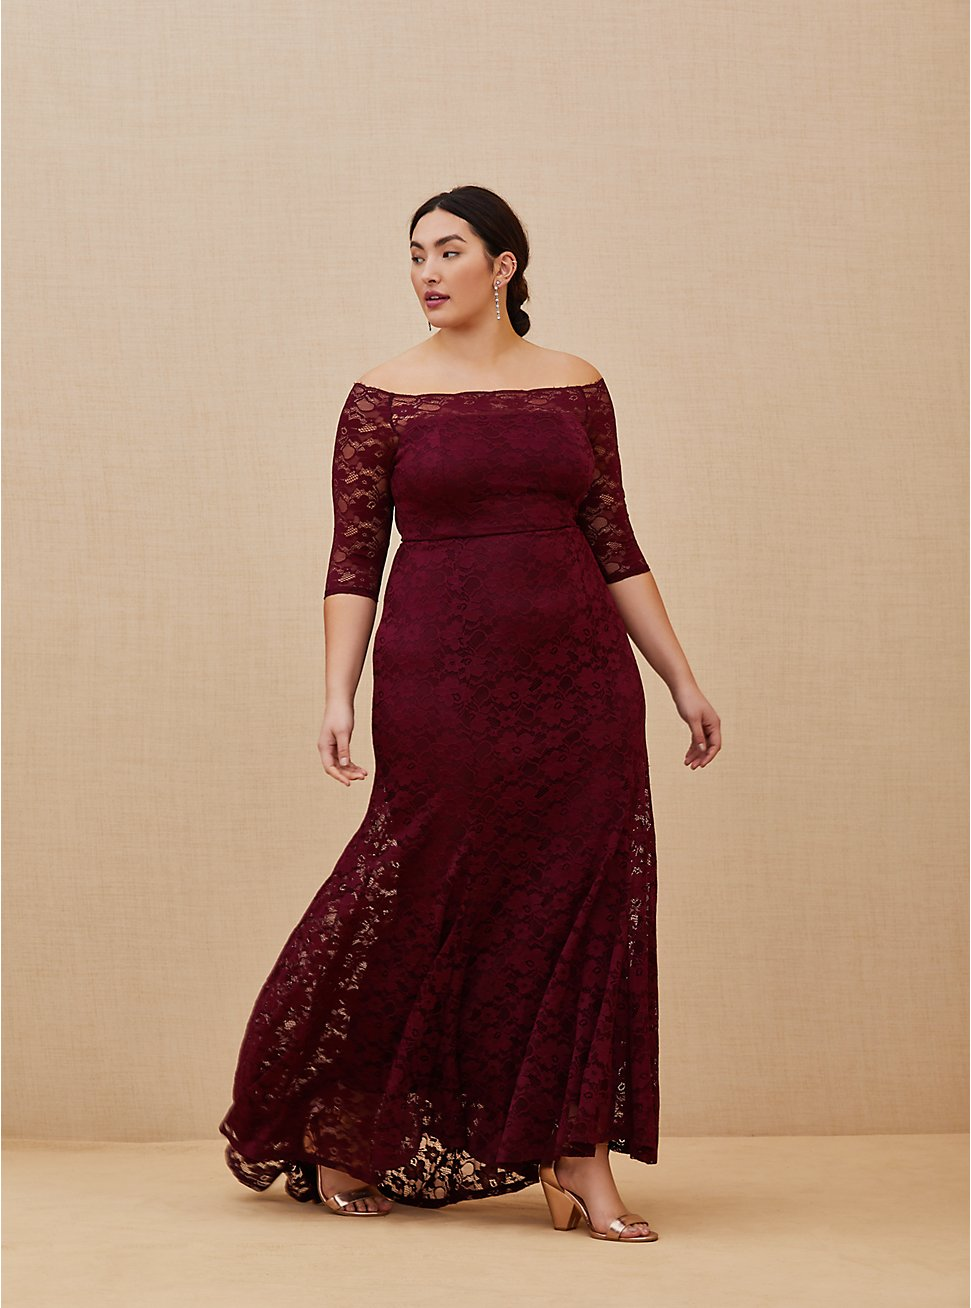 Special Occasion Burgundy Lace Off Shoulder Maxi Dress